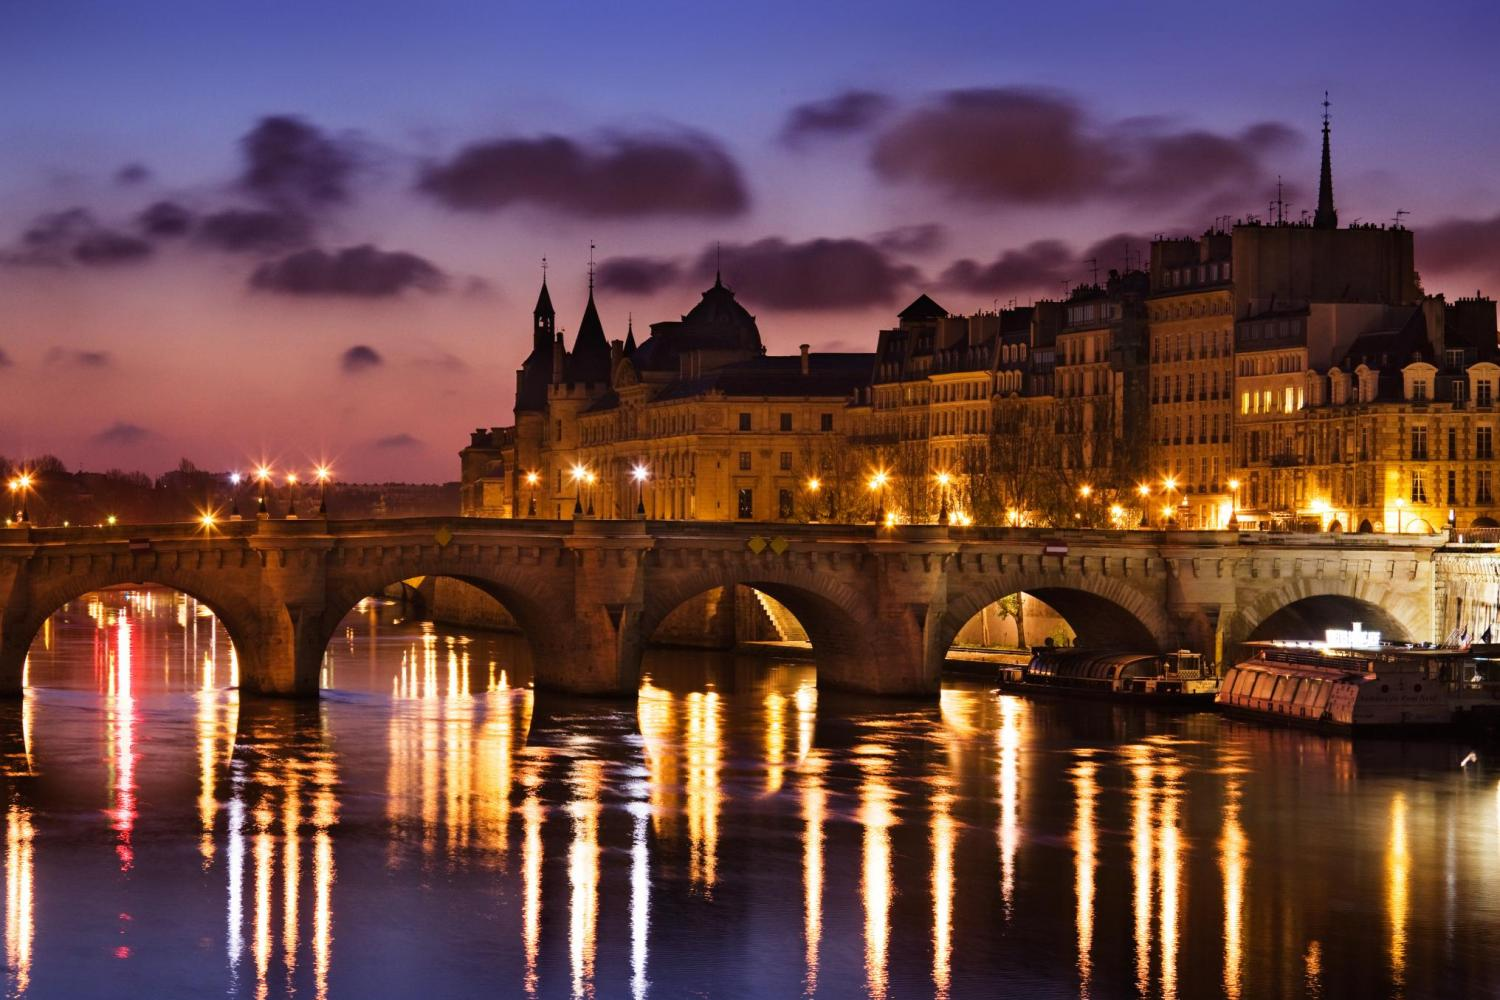 Early Evening Marina Champagne & Dinner Cruise on the Seine River